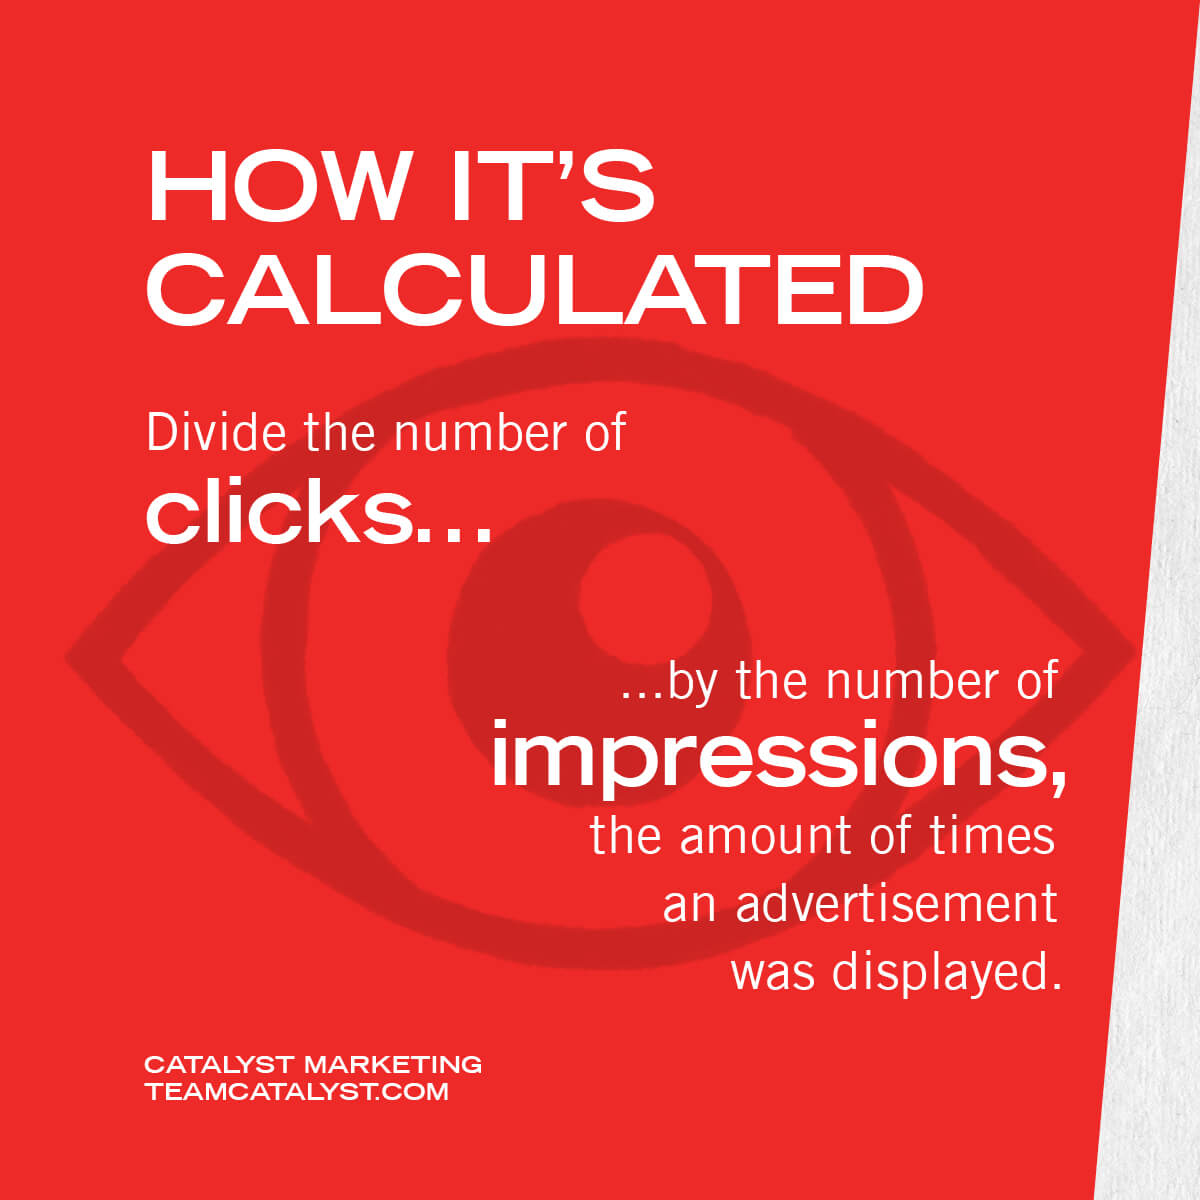 Divide the number of clicks by the number of impressions, the amount of times an advertisement was displayed.